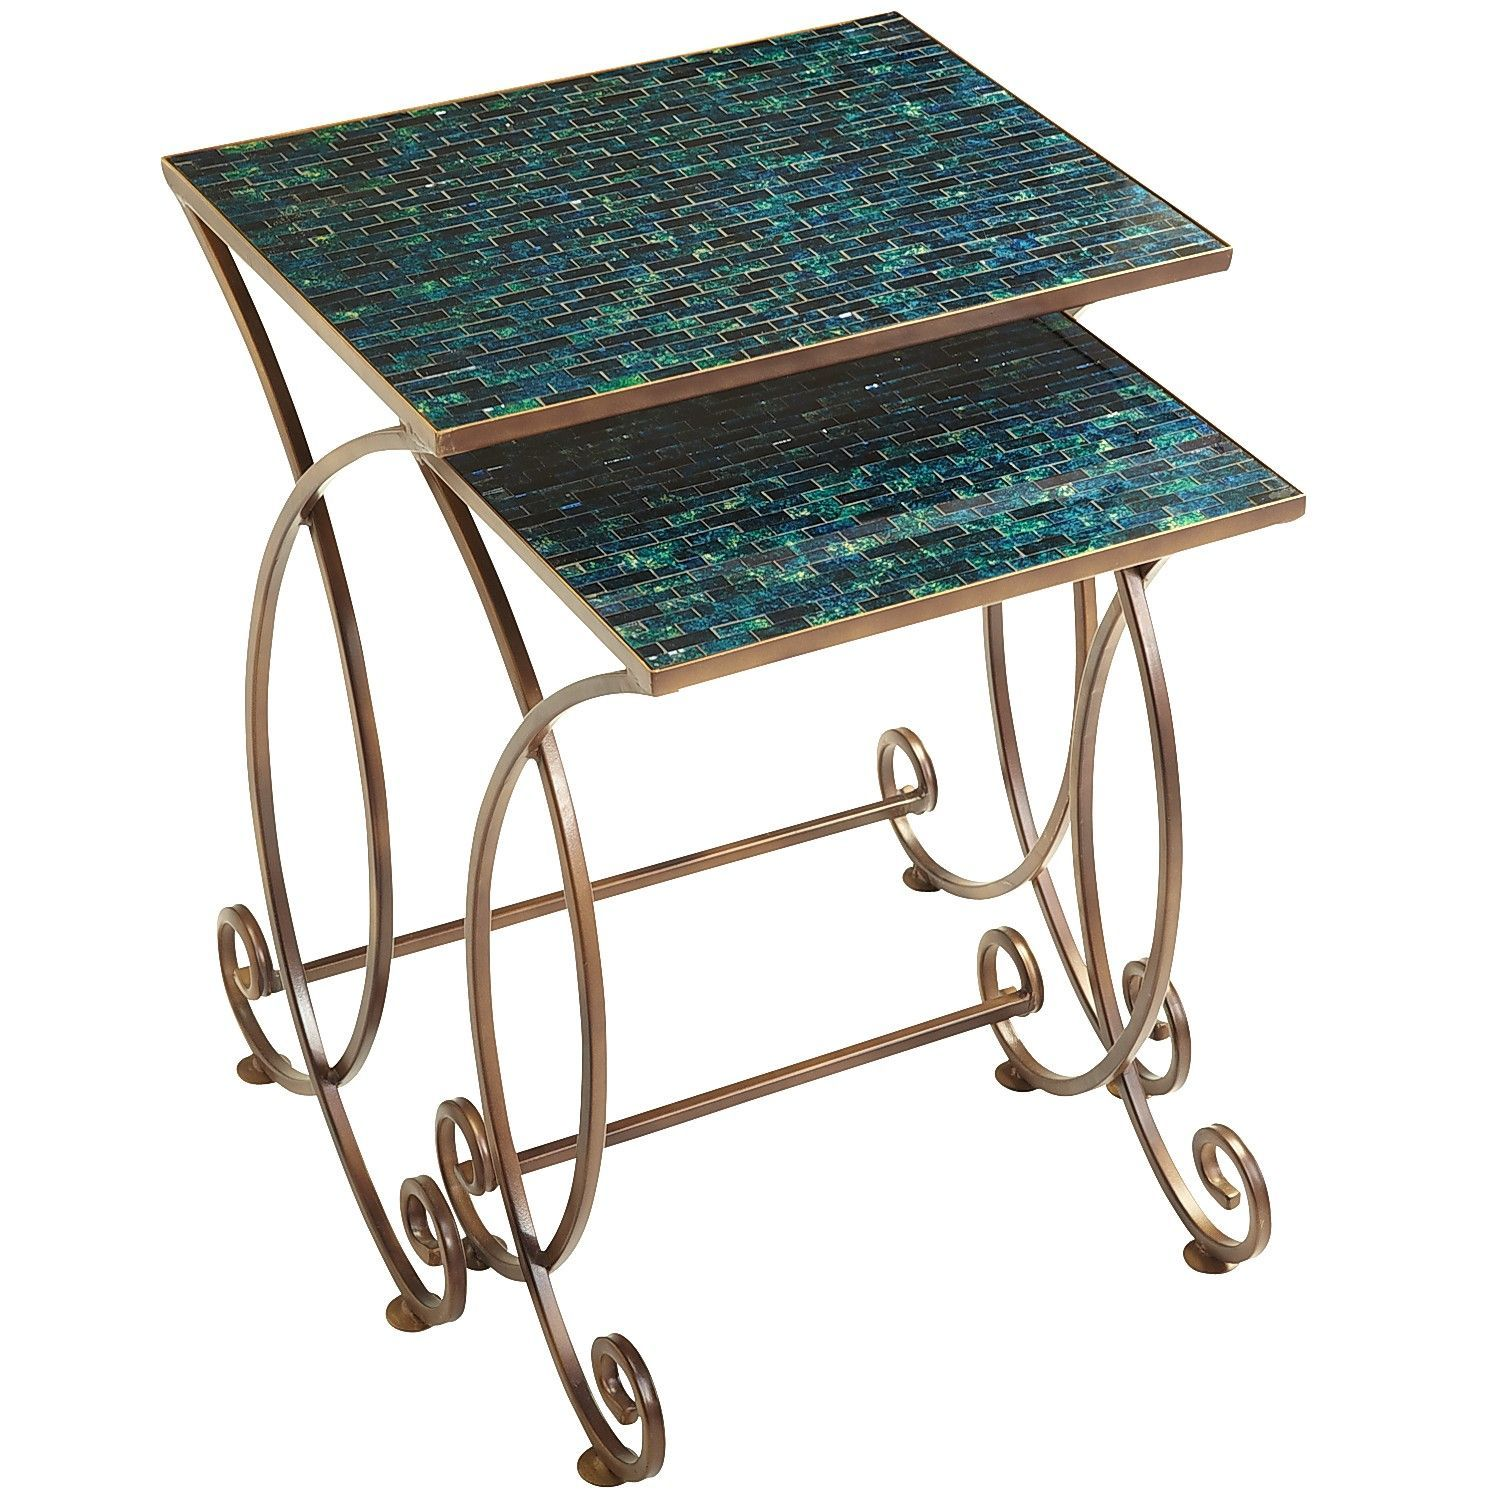 Cerulean Nesting Tables Pier 1 Imports Nesting Tables Decor